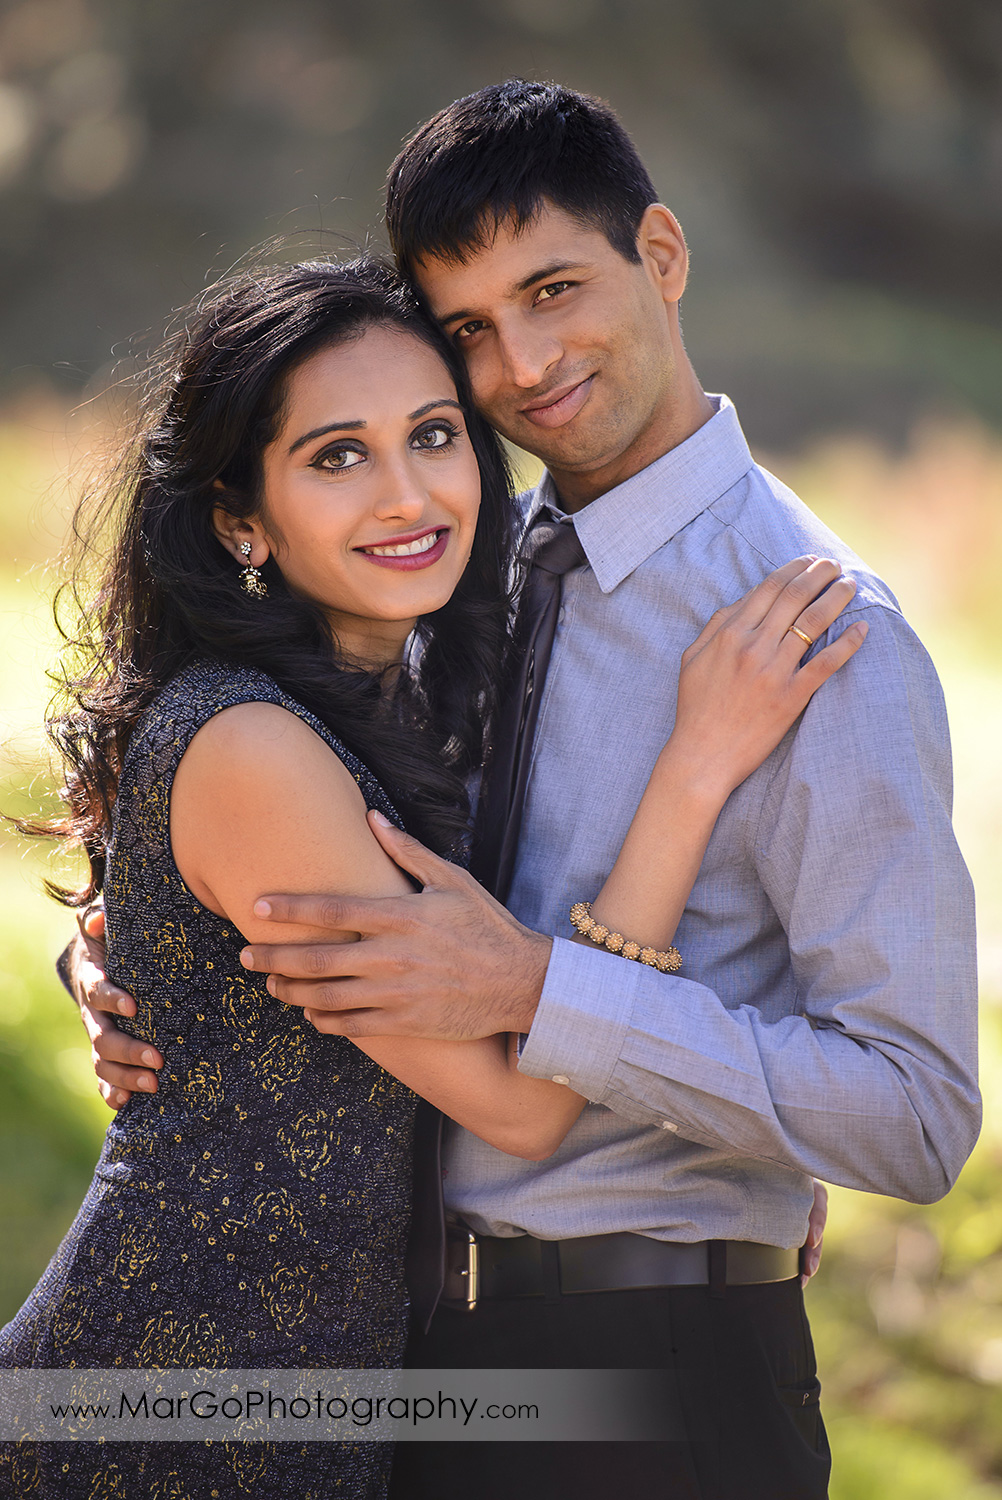 3/4 portrait of Indian couple in blue clothes during engagement session at San Francisco Presidio Park